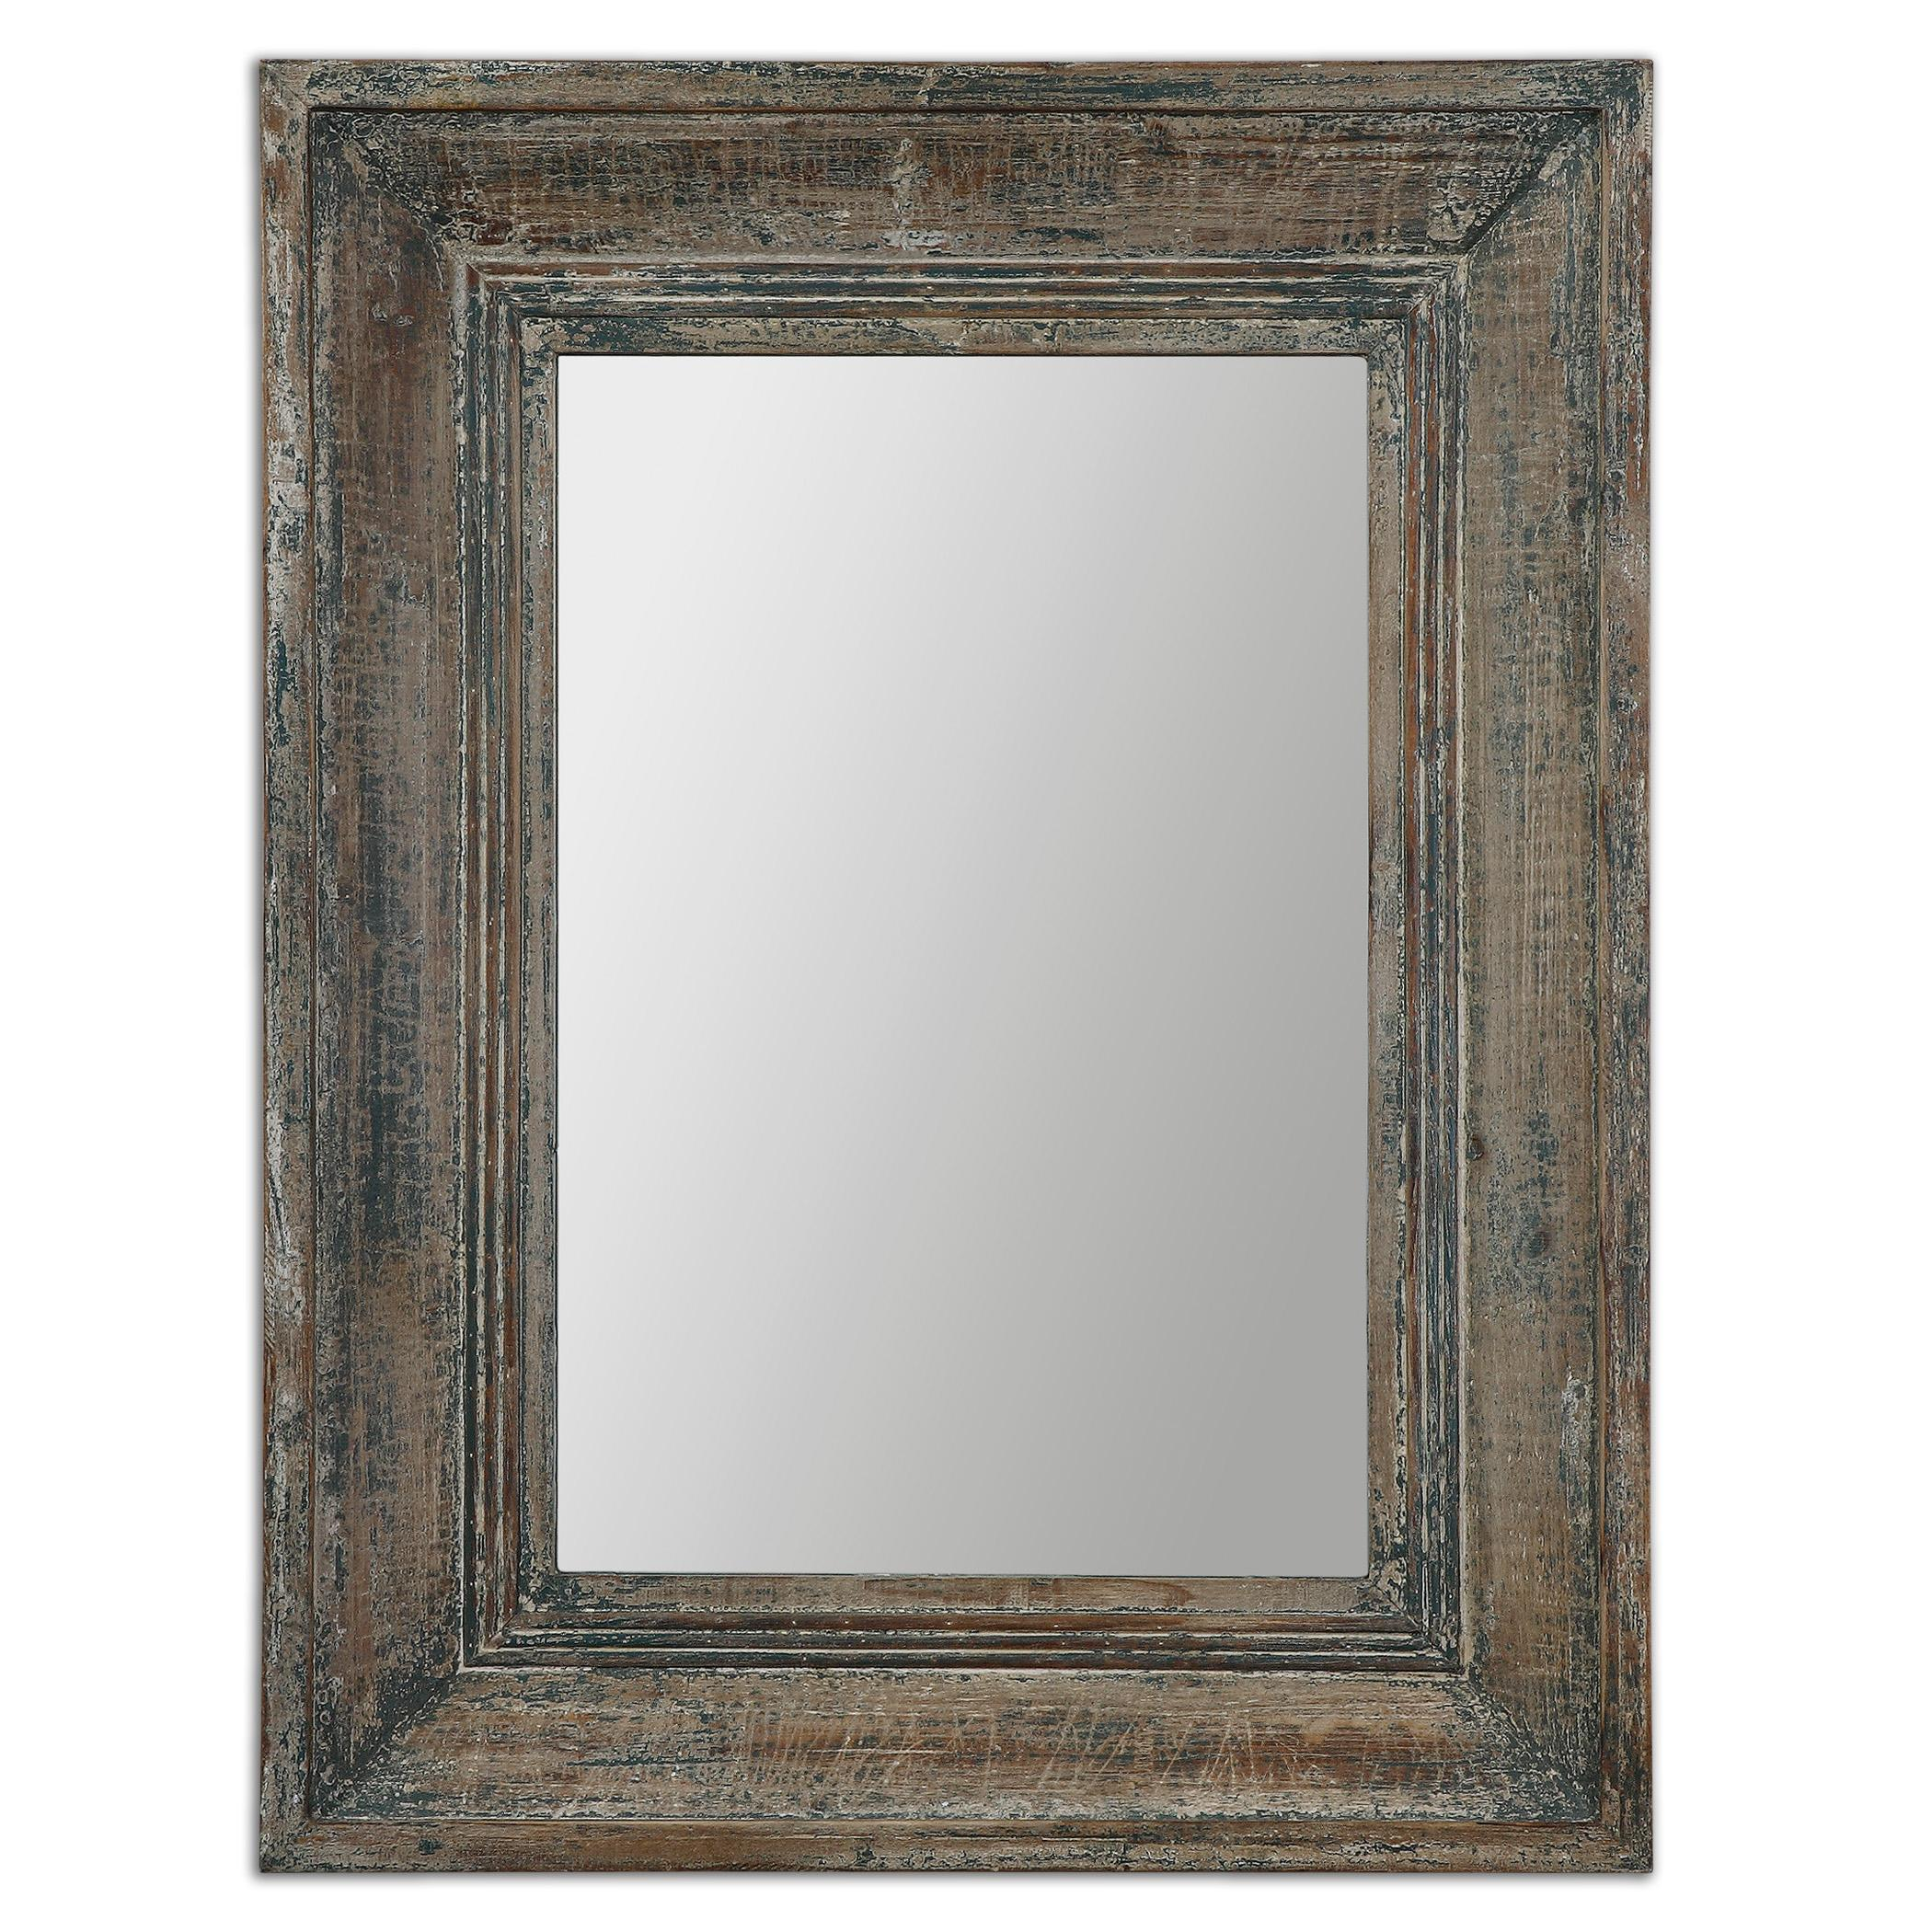 Uttermost Mirrors Missoula Small Mirror - Item Number: 13854